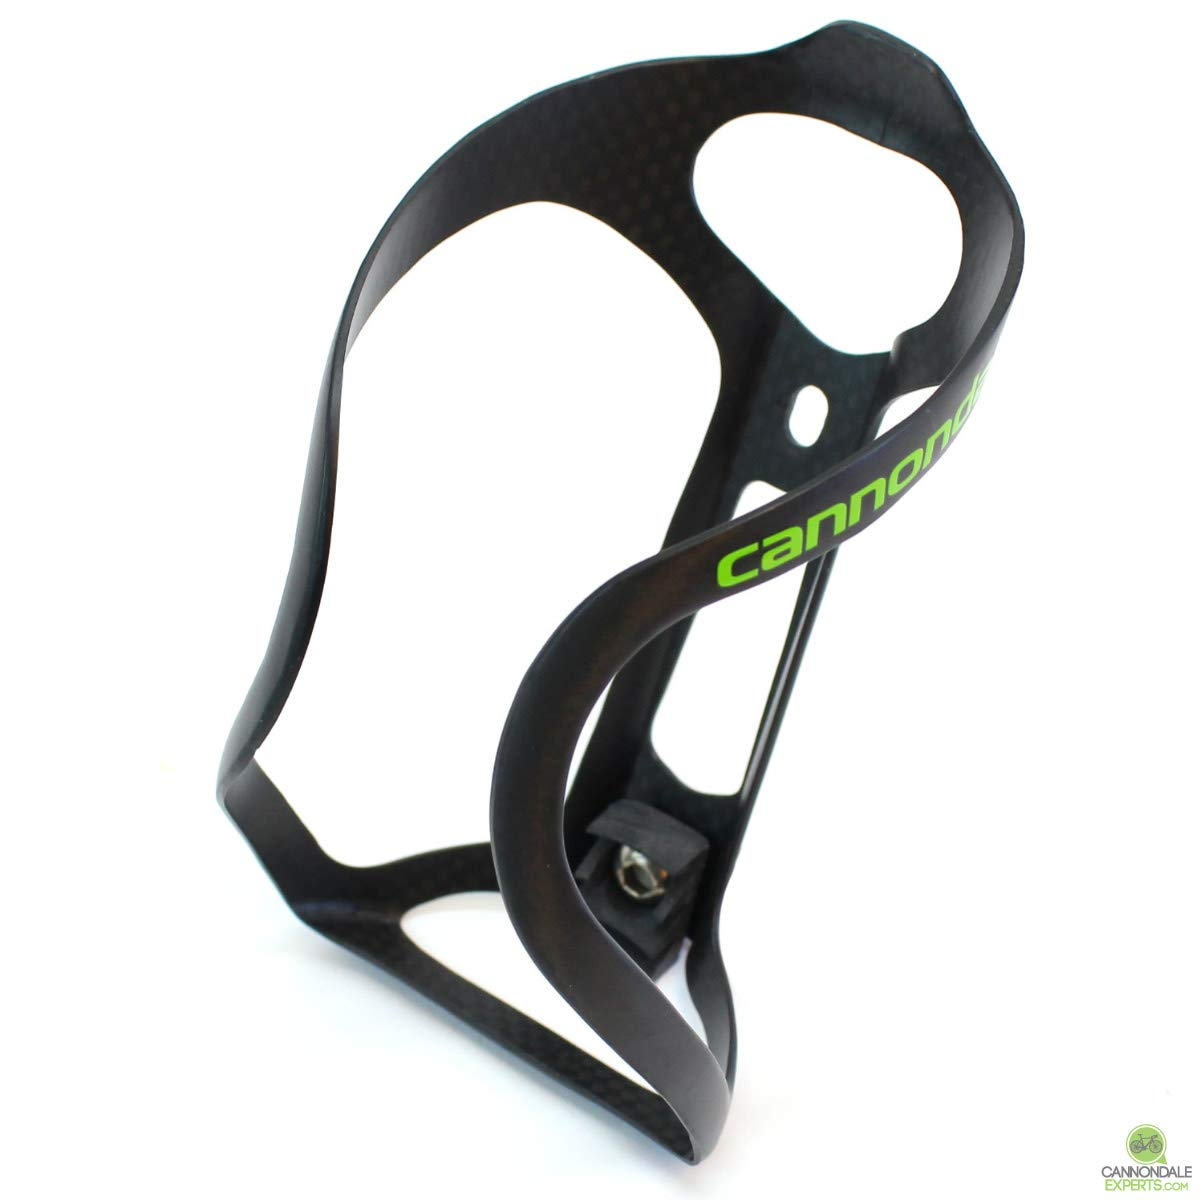 Cannondale GT-40 Carbon Bicycle Water Bottle Cage - Black/Green - CP5107U13OS